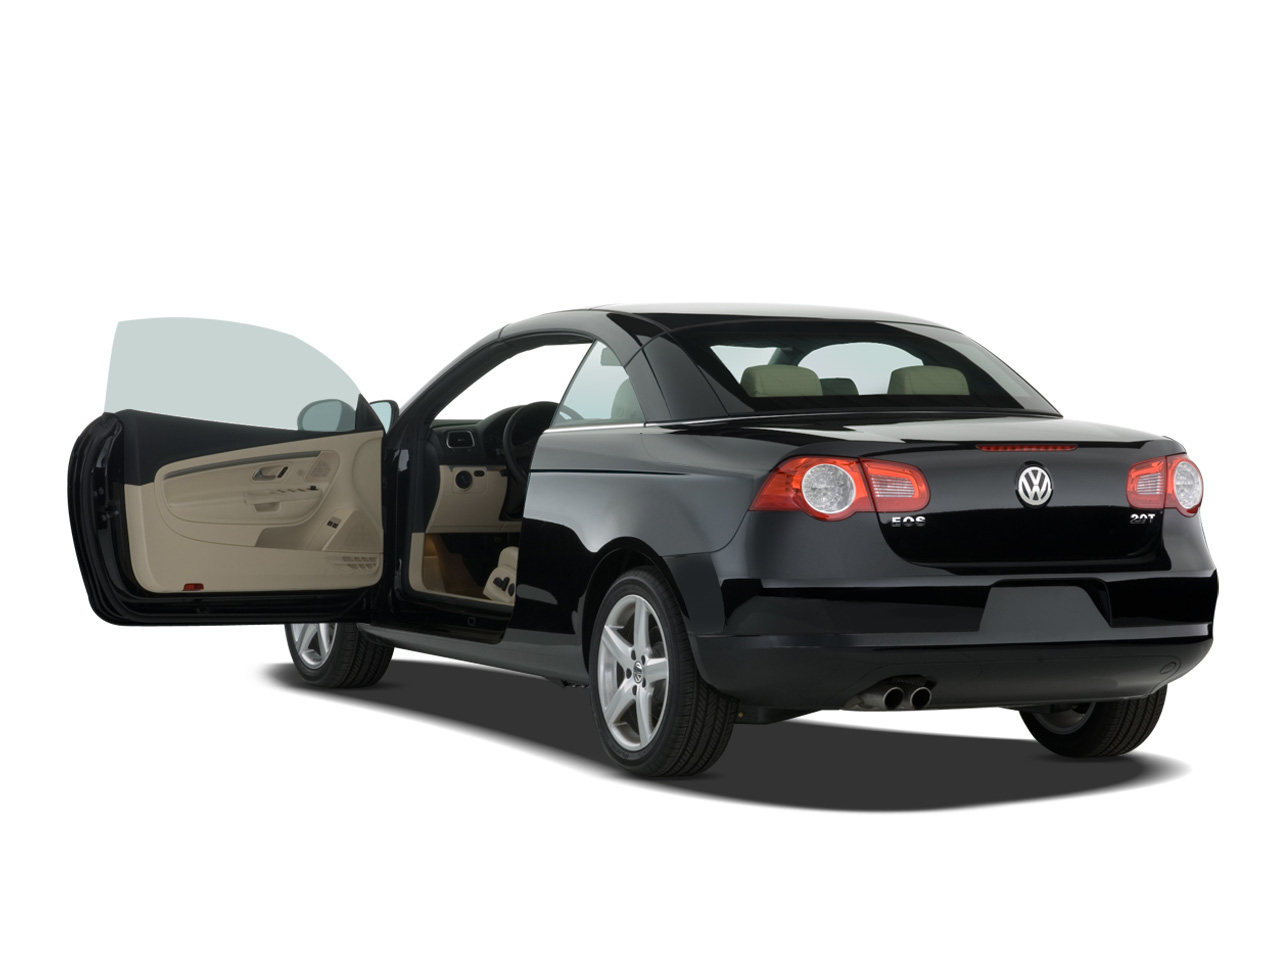 2007 volkswagen eos new car review automobile magazine. Black Bedroom Furniture Sets. Home Design Ideas